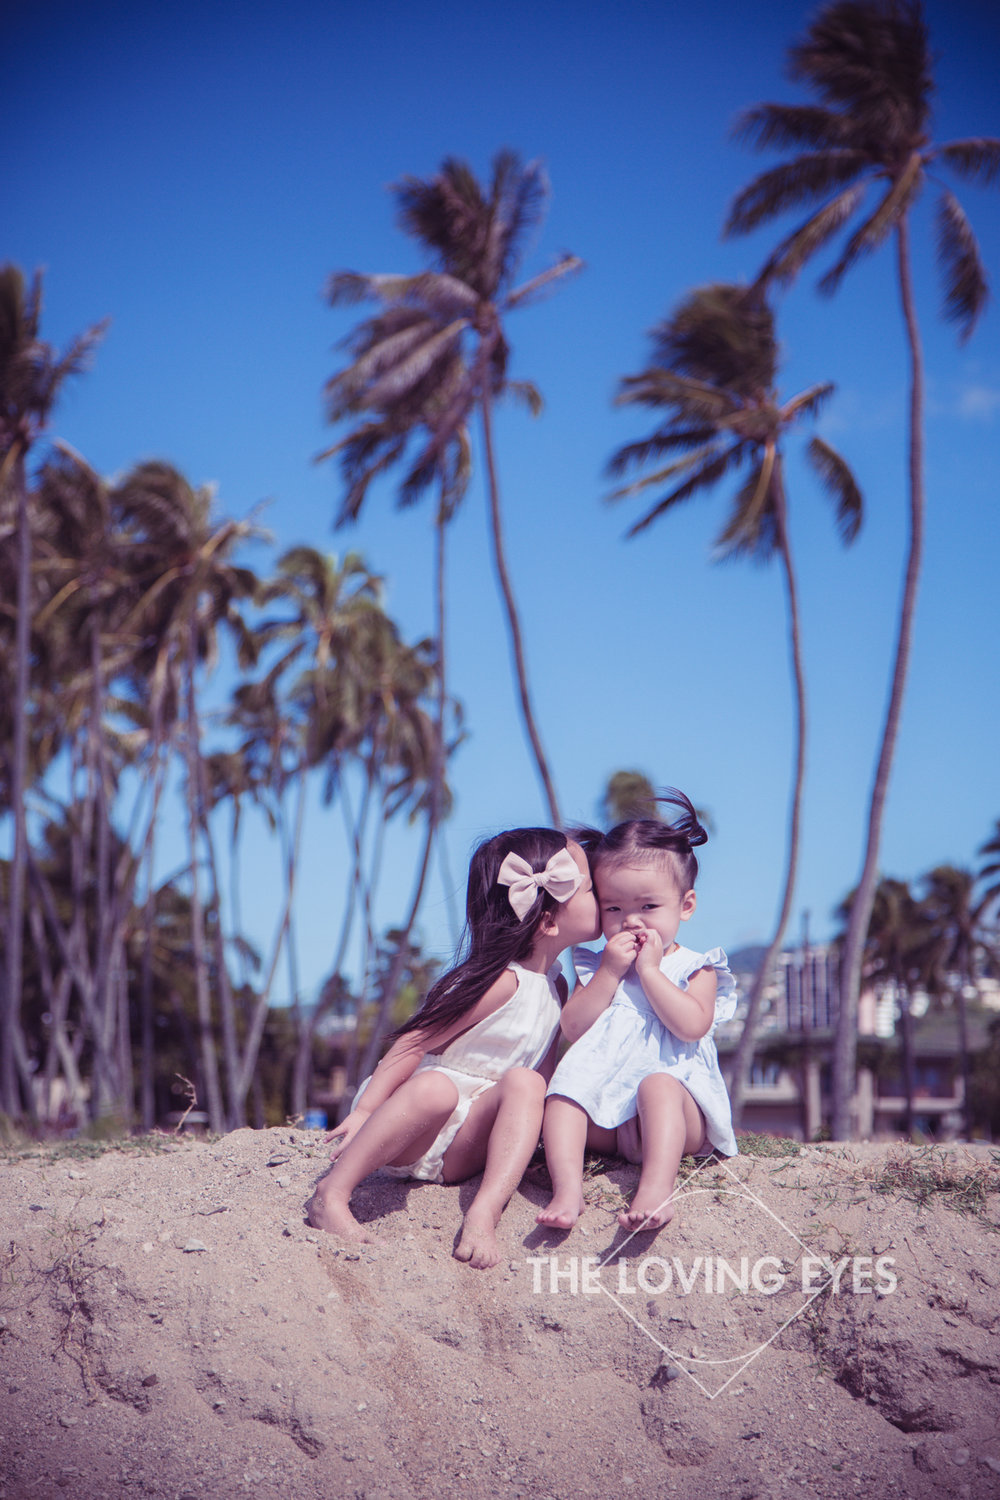 Children photography on the beach in Hawaii